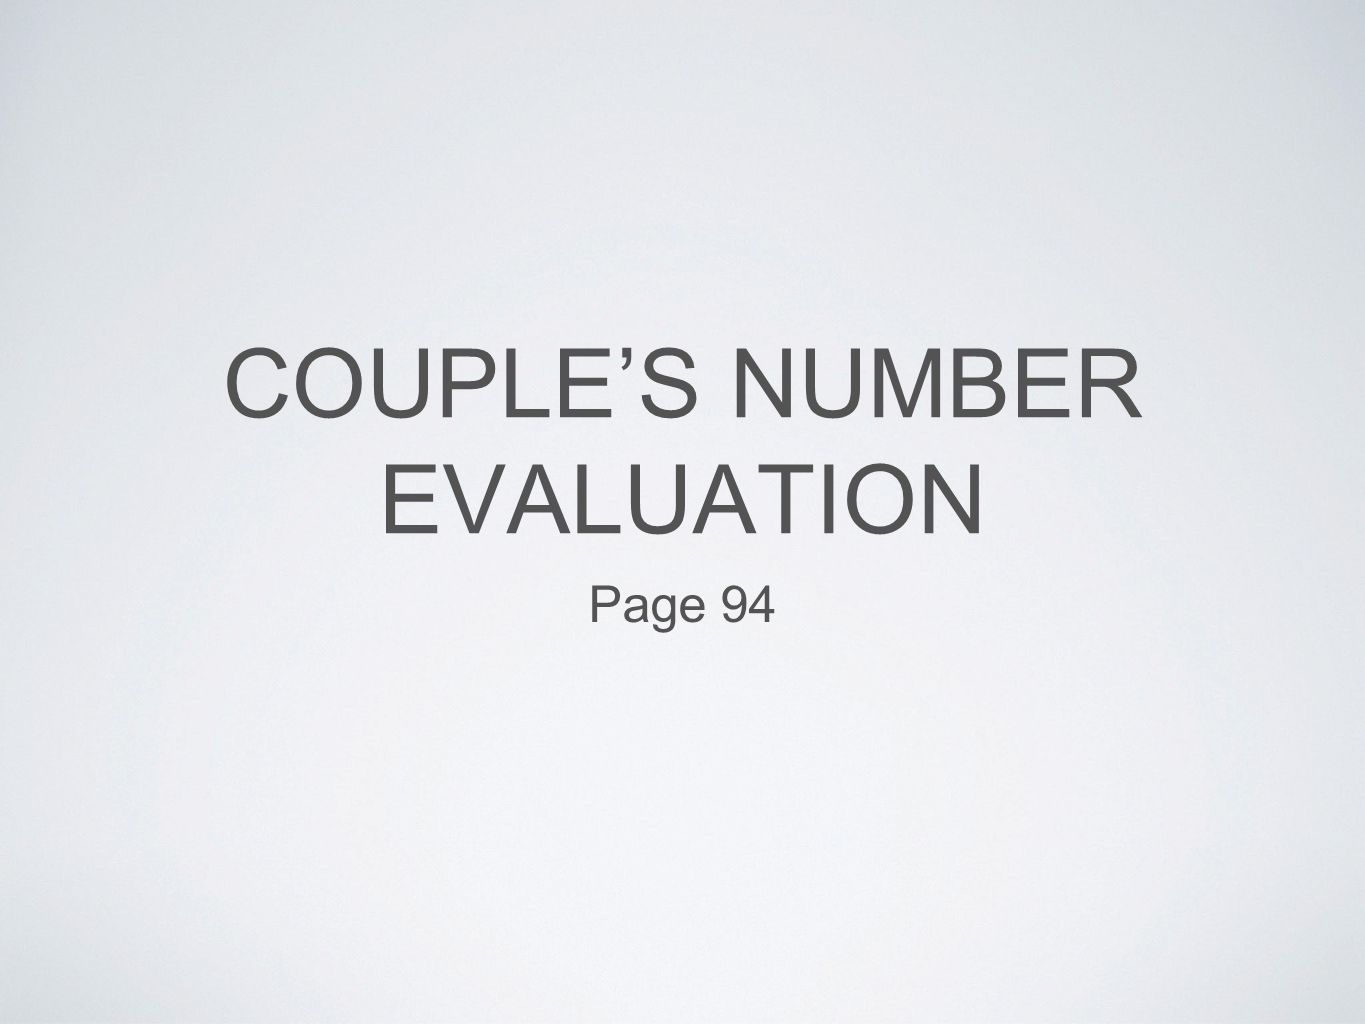 COUPLE'S NUMBER EVALUATION Page 94